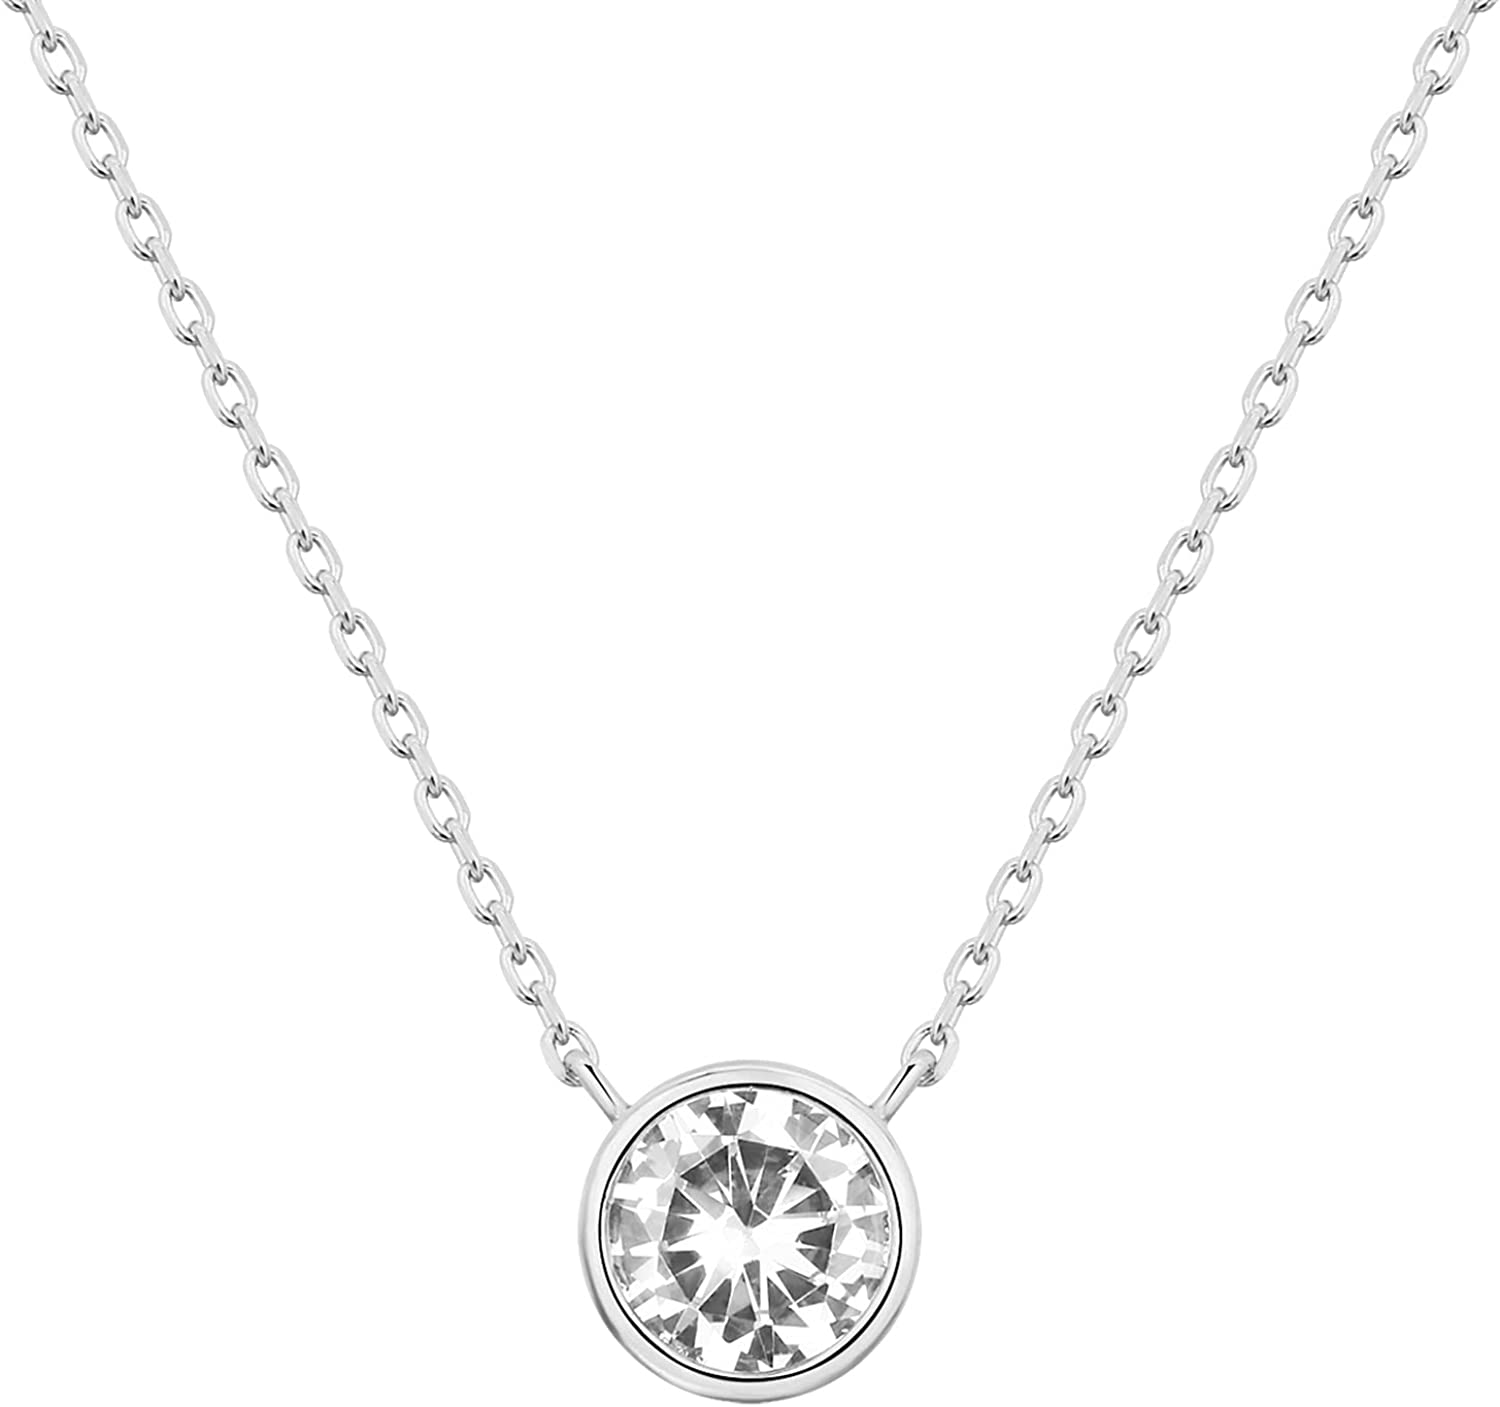 PAVOI 14K Gold Plated Sale Special Price 1.00 ct D Simulate CZ Color VVS Clarity Max 85% OFF